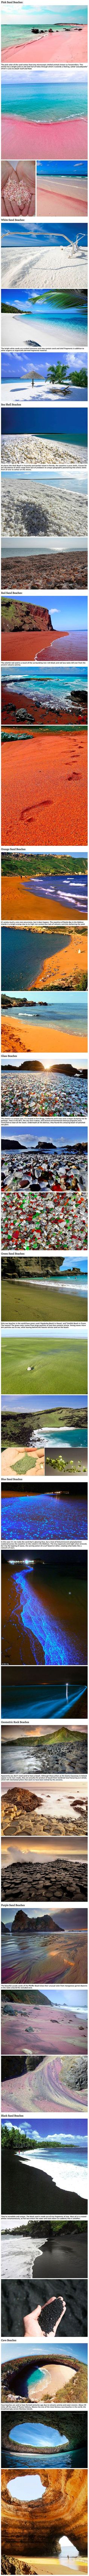 Colored beaches